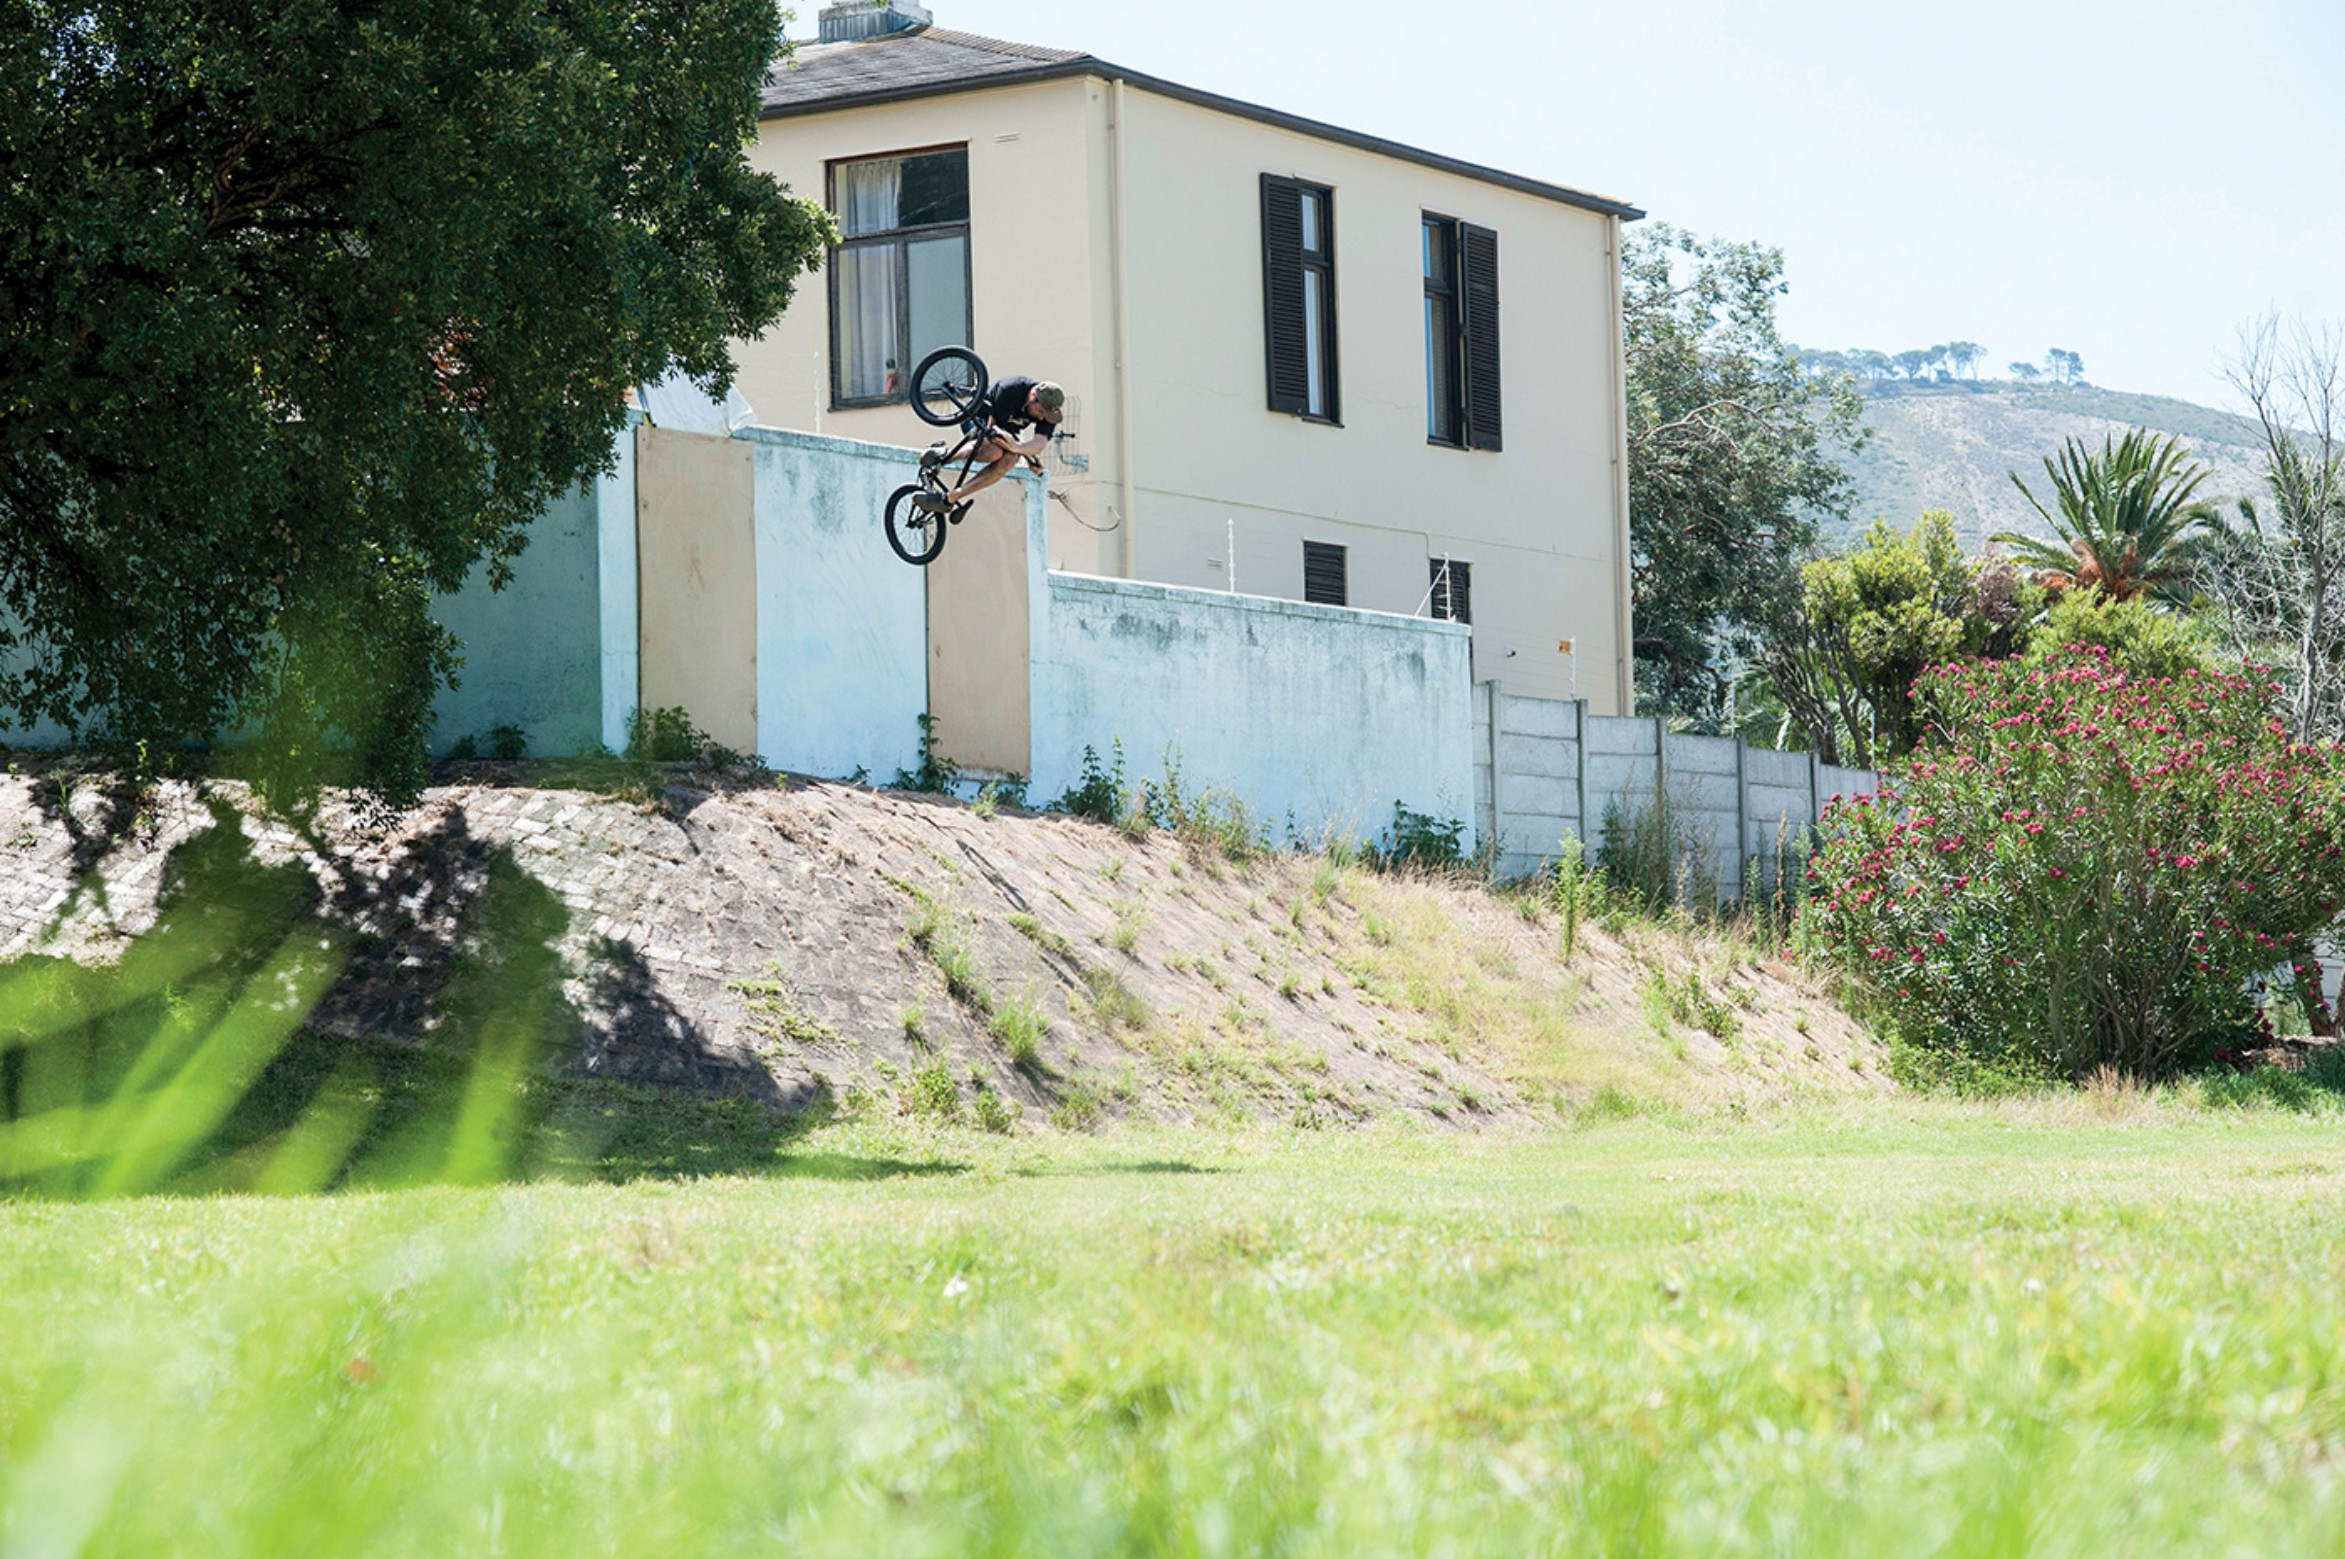 Kevin Kalkoff talks Ultimate X and The Night Harvest BMX contests